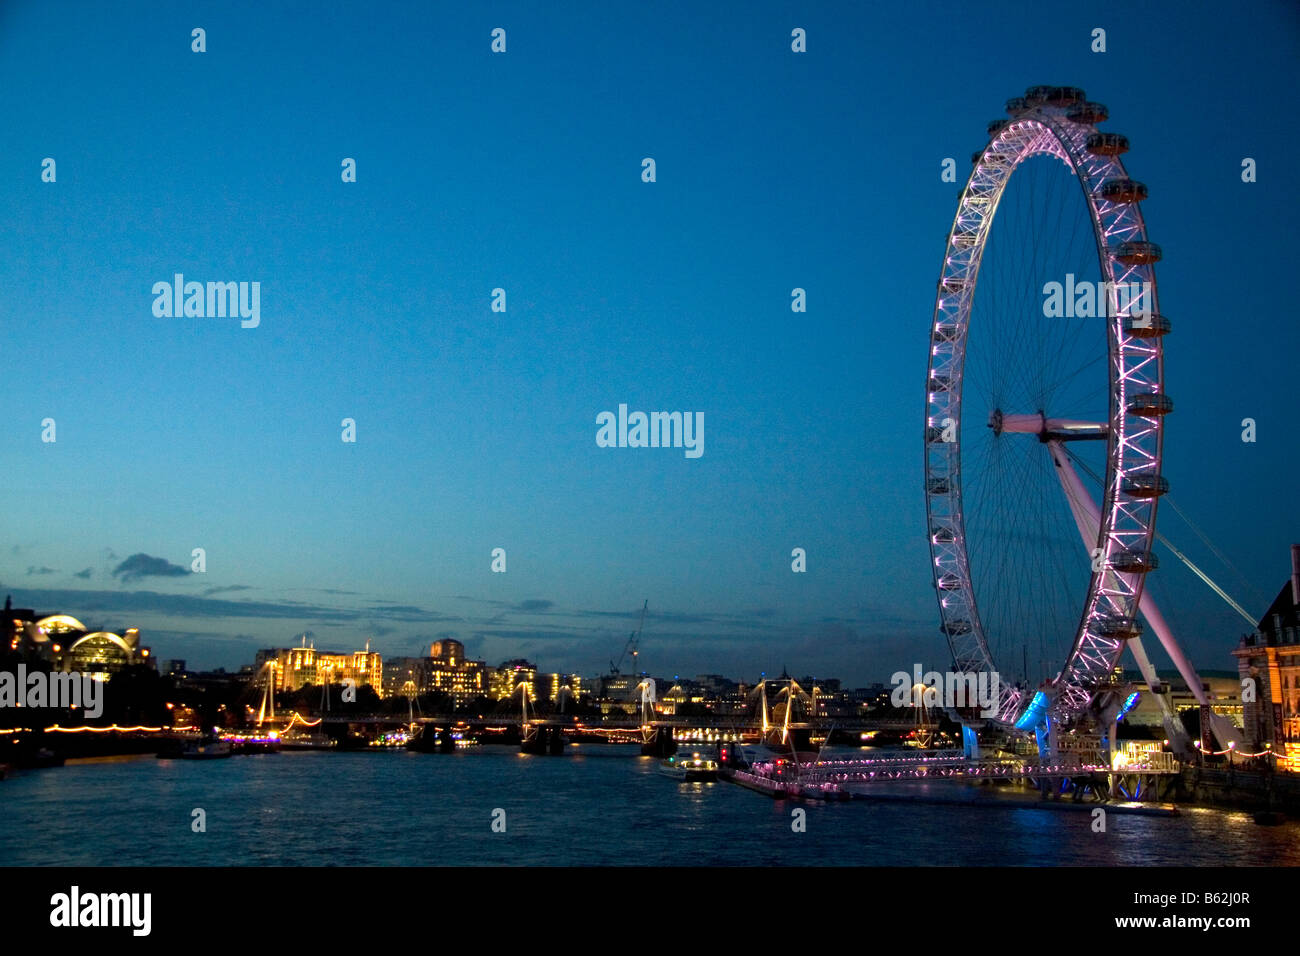 The London Eye at night along the River Thames in London England - Stock Image